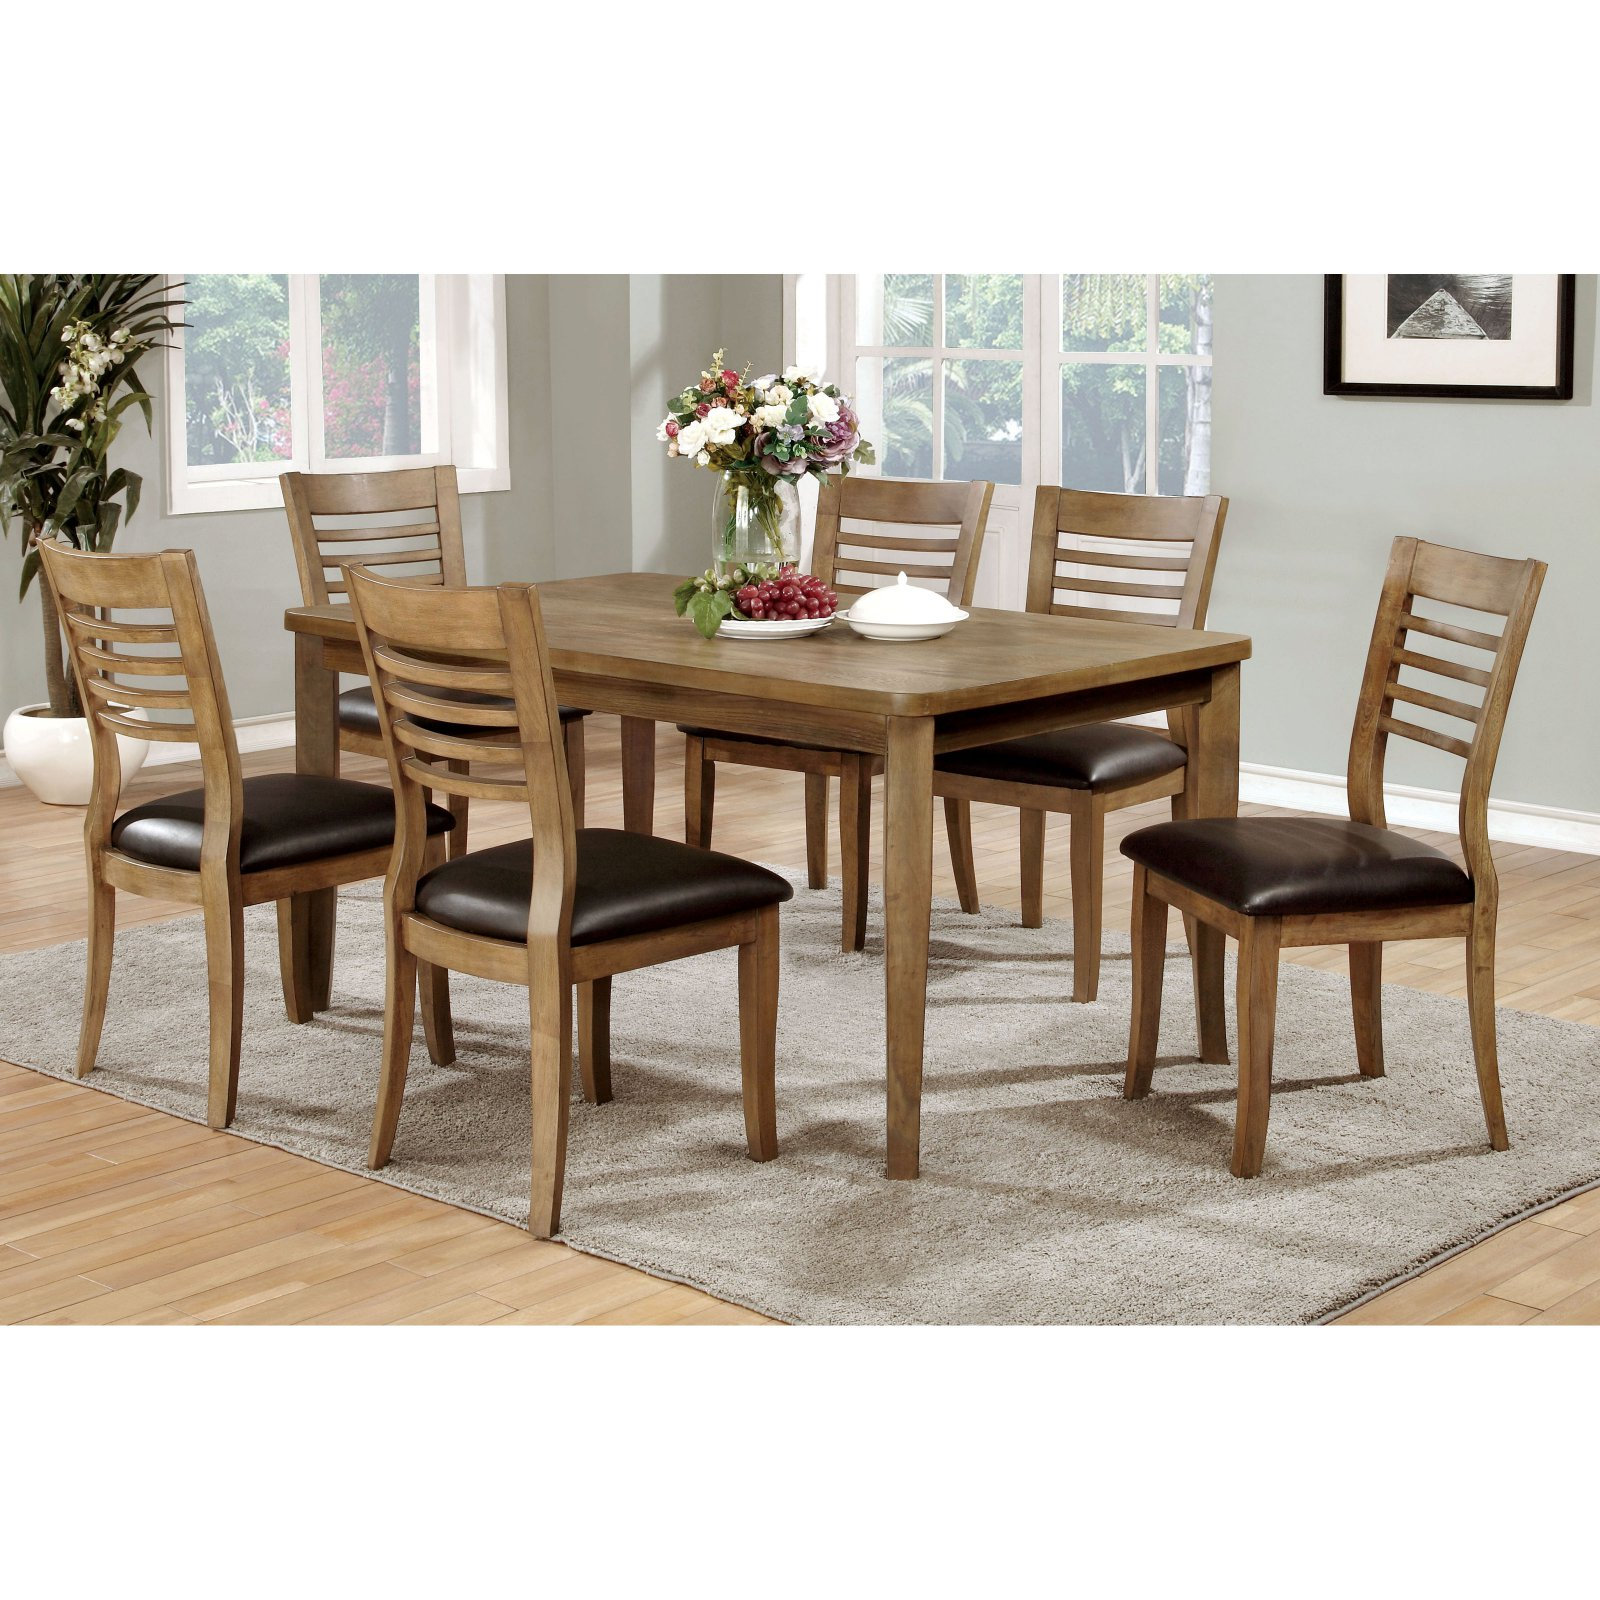 Furniture of America Claxton Wood Dining Table